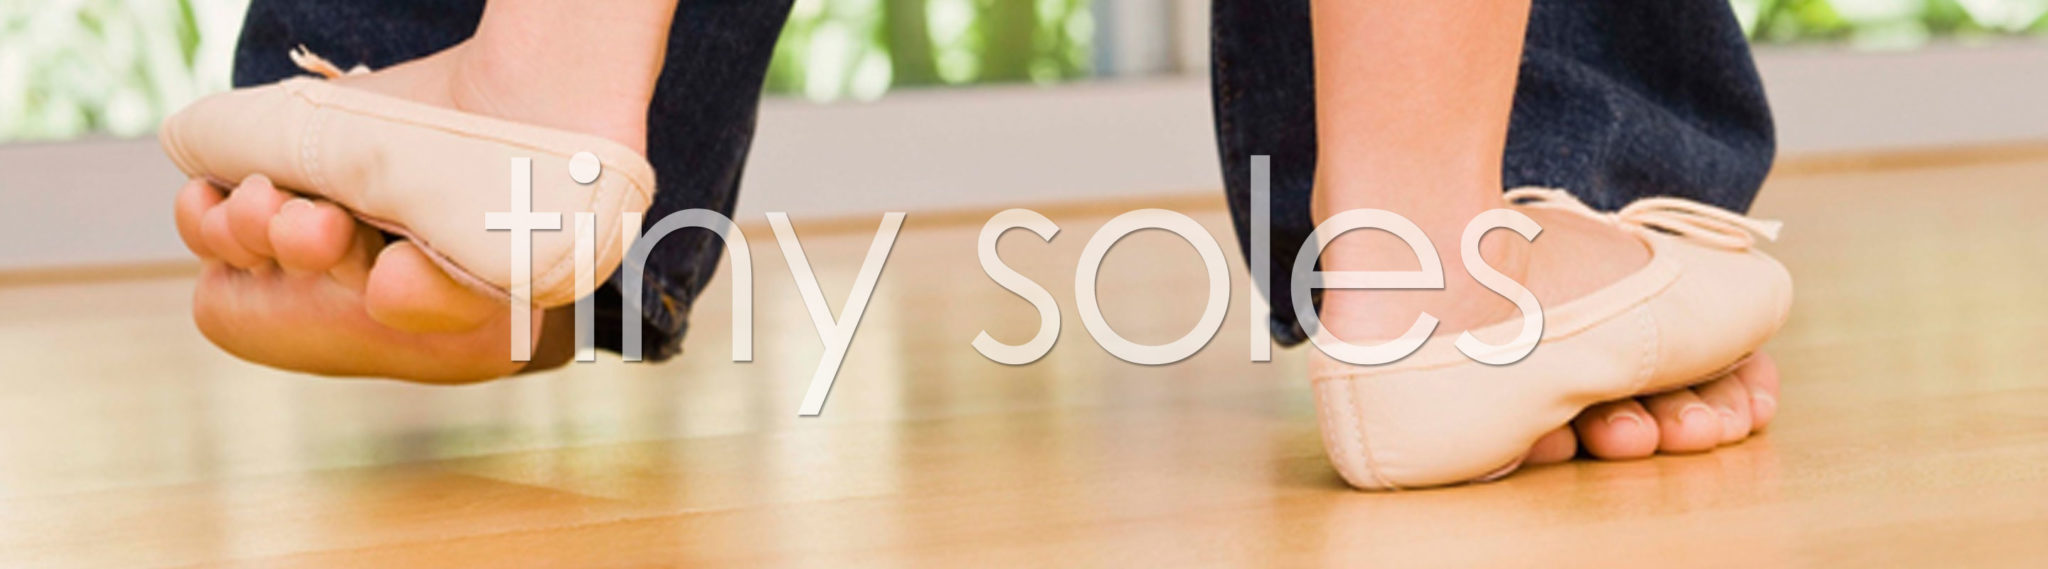 header_tinysoles